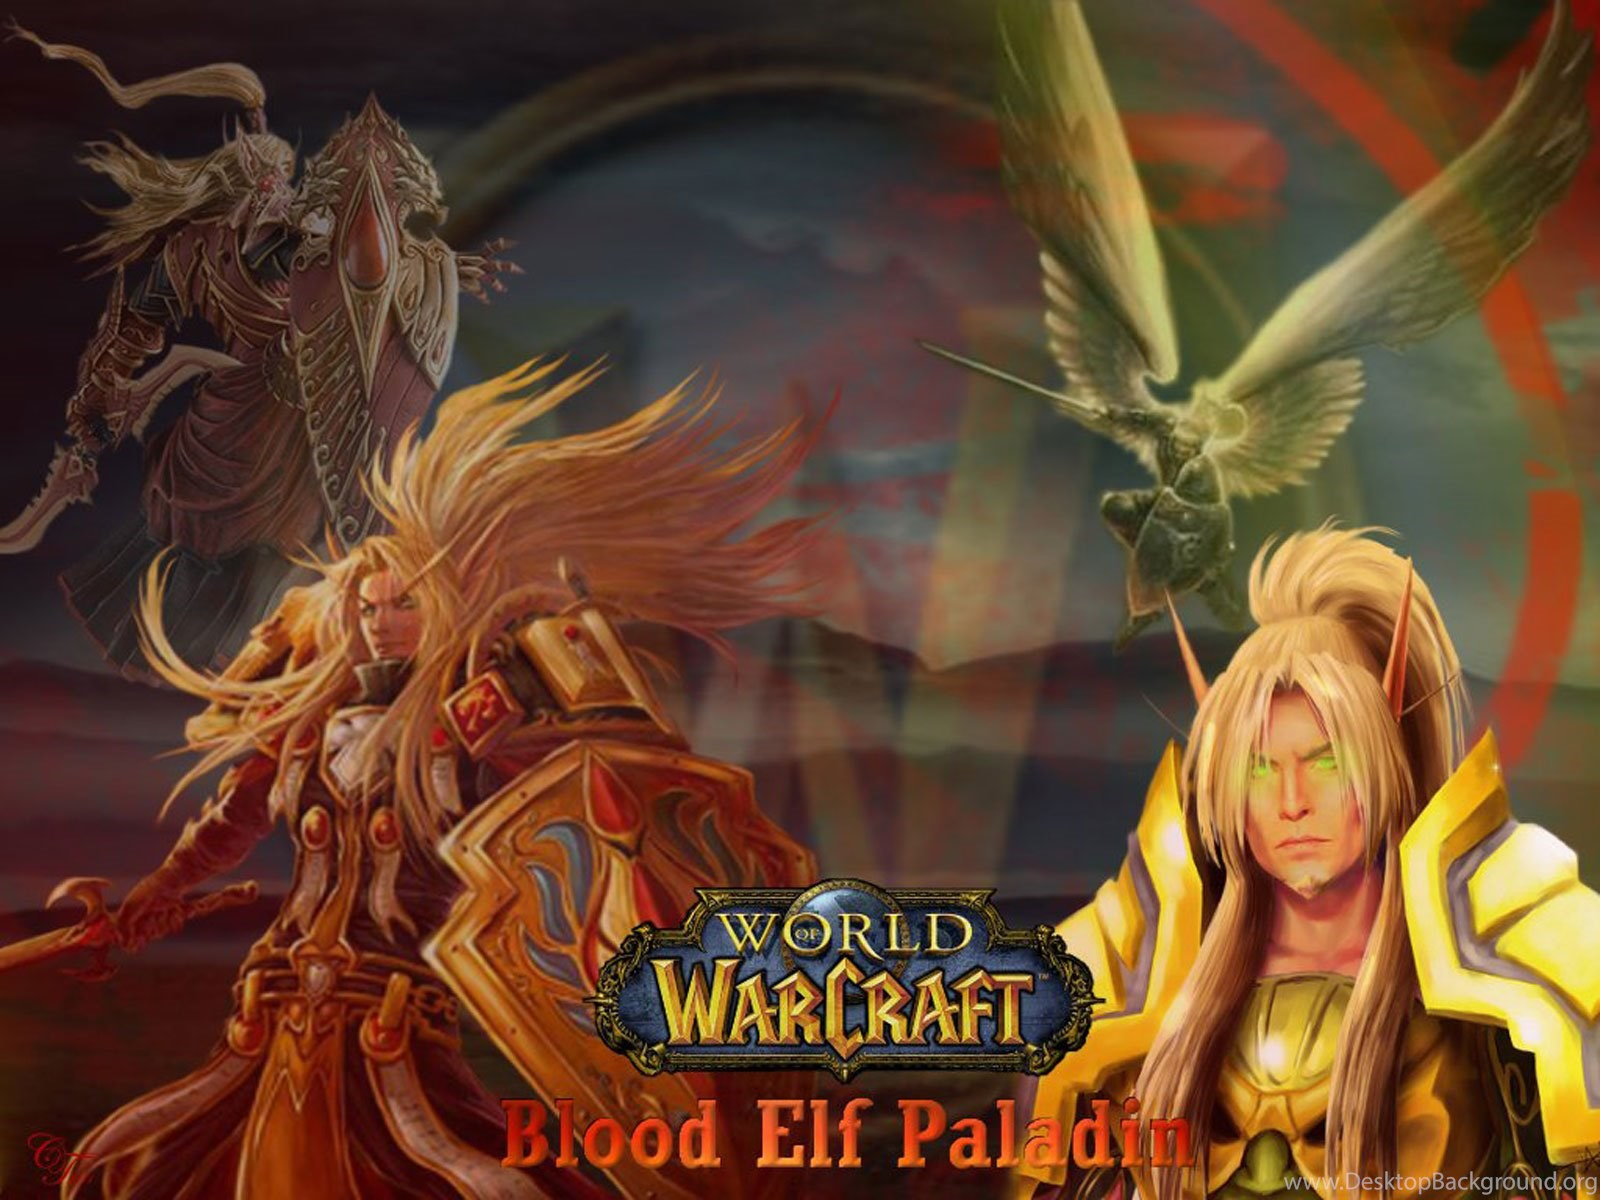 World Of Warcraft Wallpapers Paladin Wallpaper Desktop Background